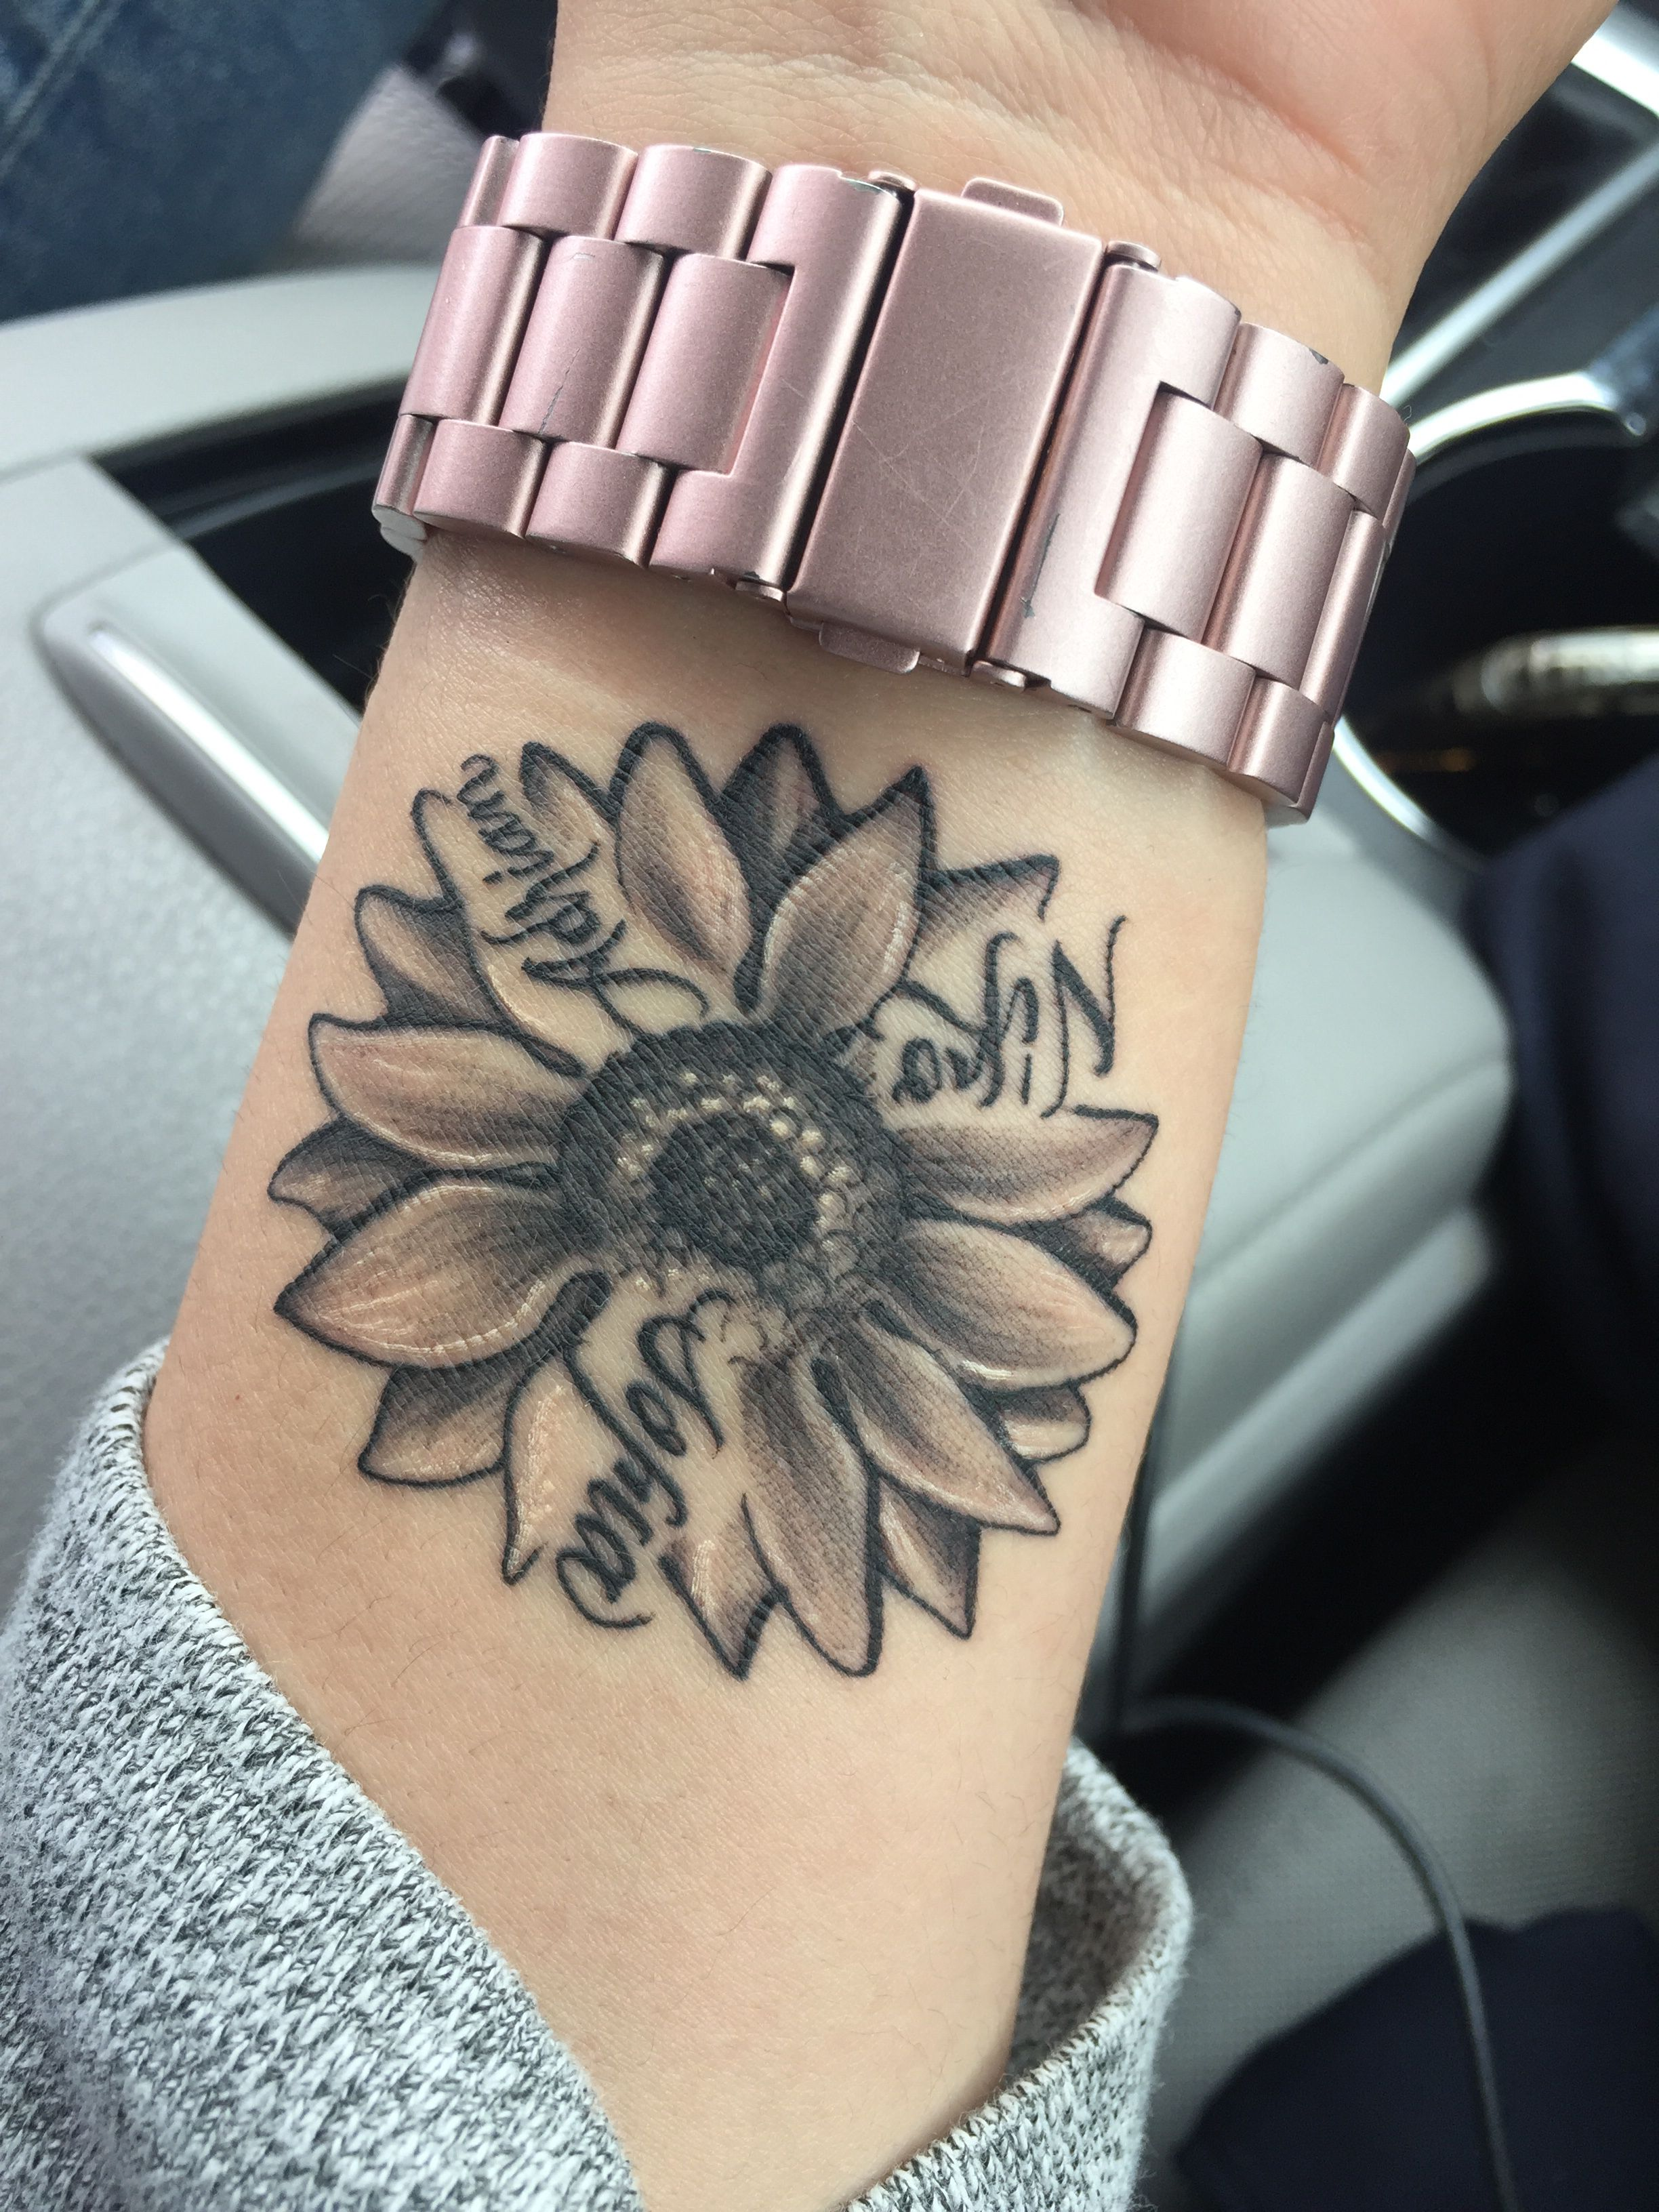 Sunflower With My Kids Name Tattoos For Daughters Tattoos For Kids Tattoos For Women